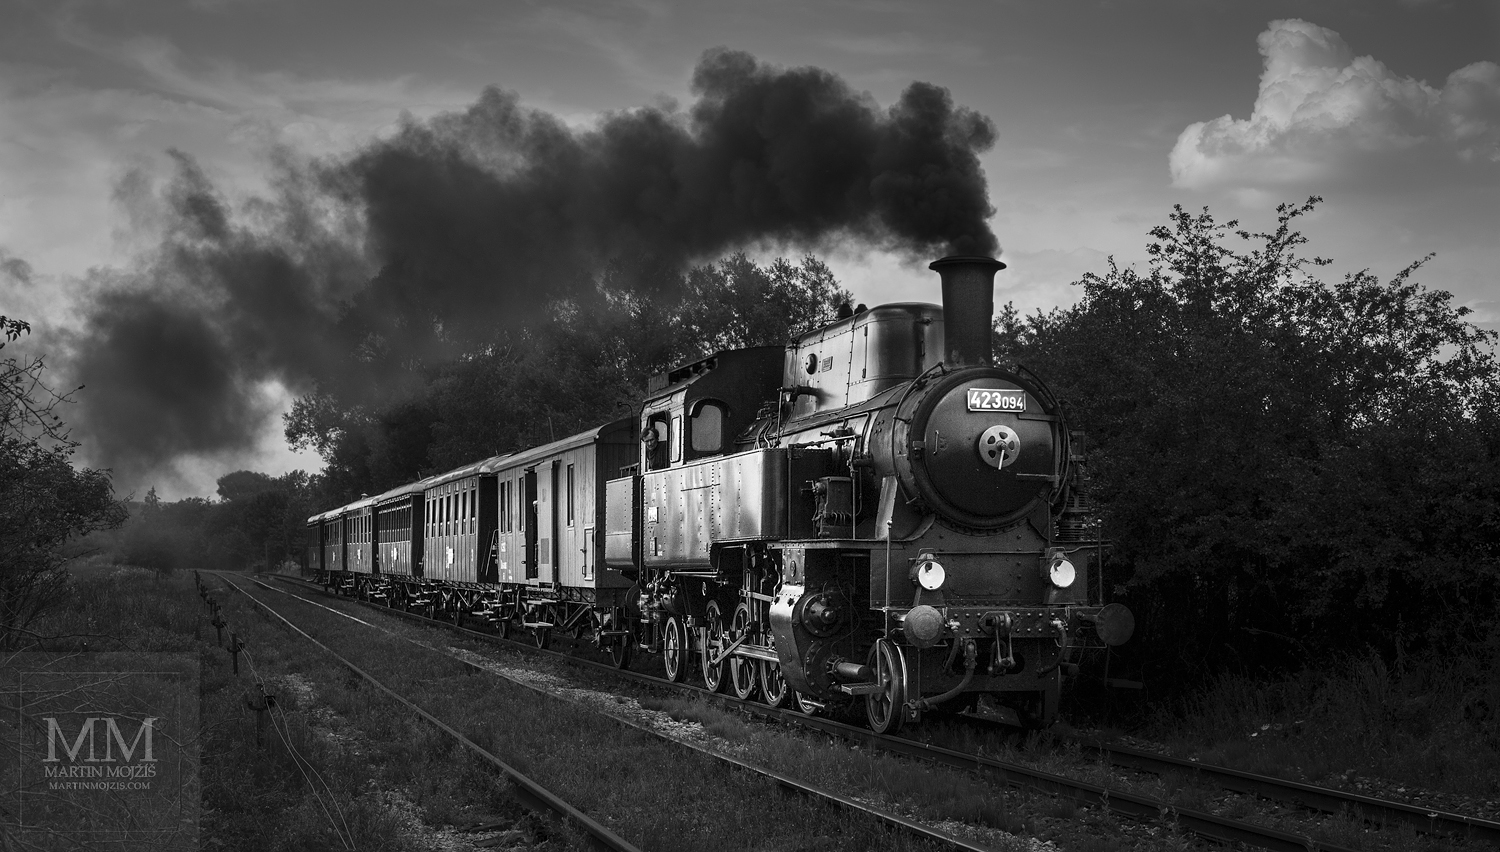 Large format, fine art photograph of smoking steam train. Martin Mojzis.